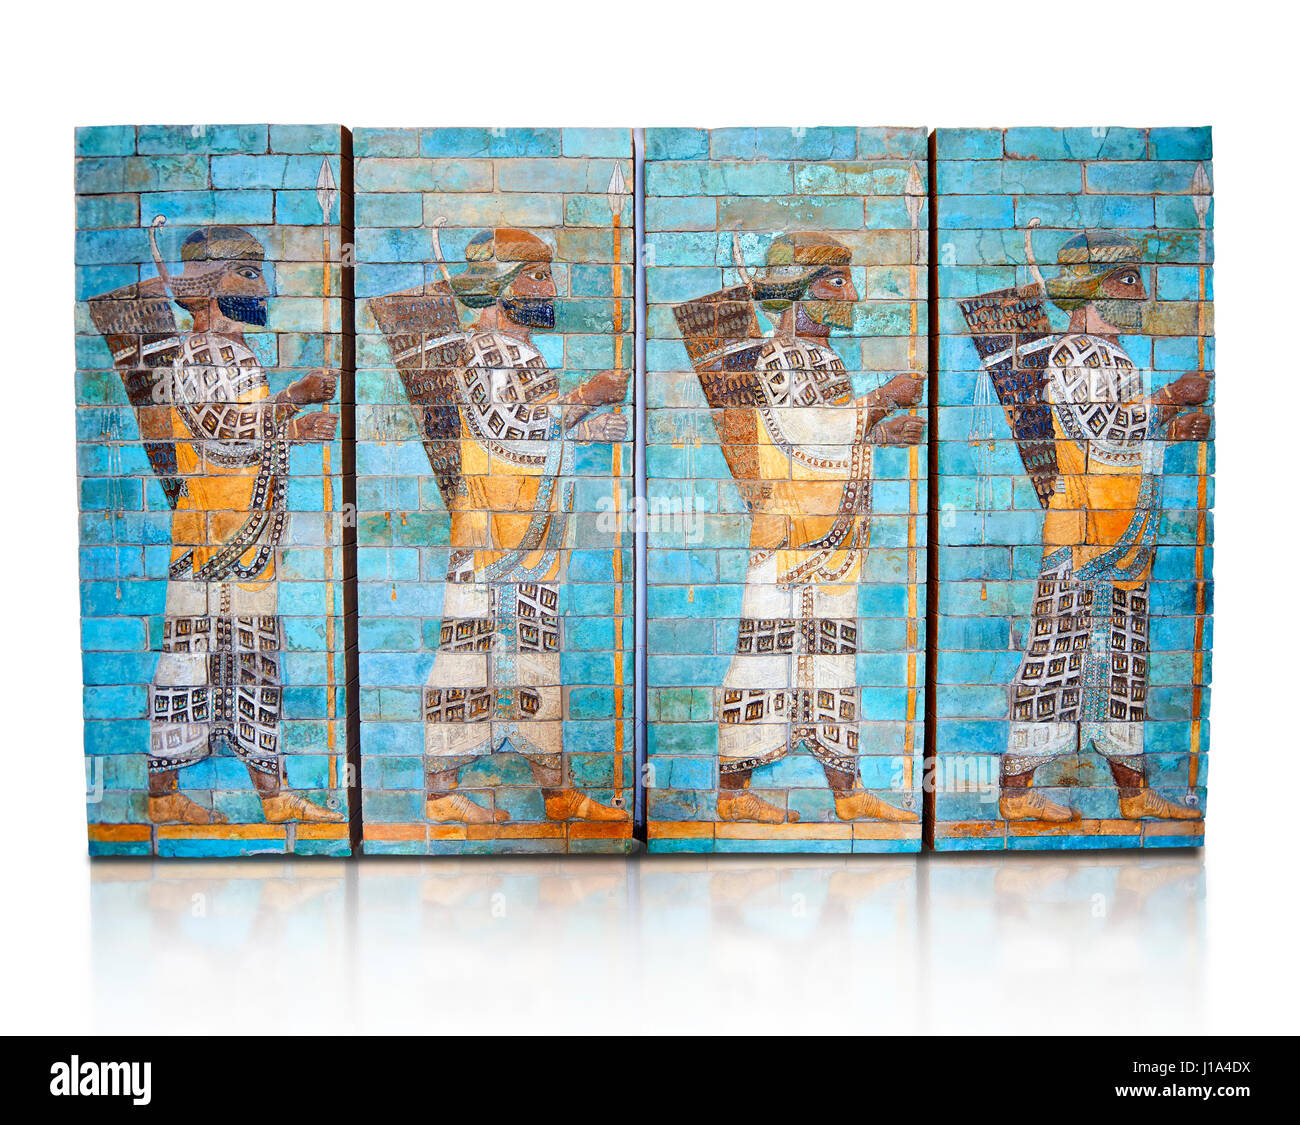 Coloured glazed terracotta brick panels depicting Achaemenid Persian royal bodyguards or archers, reign of Darius - Stock Image